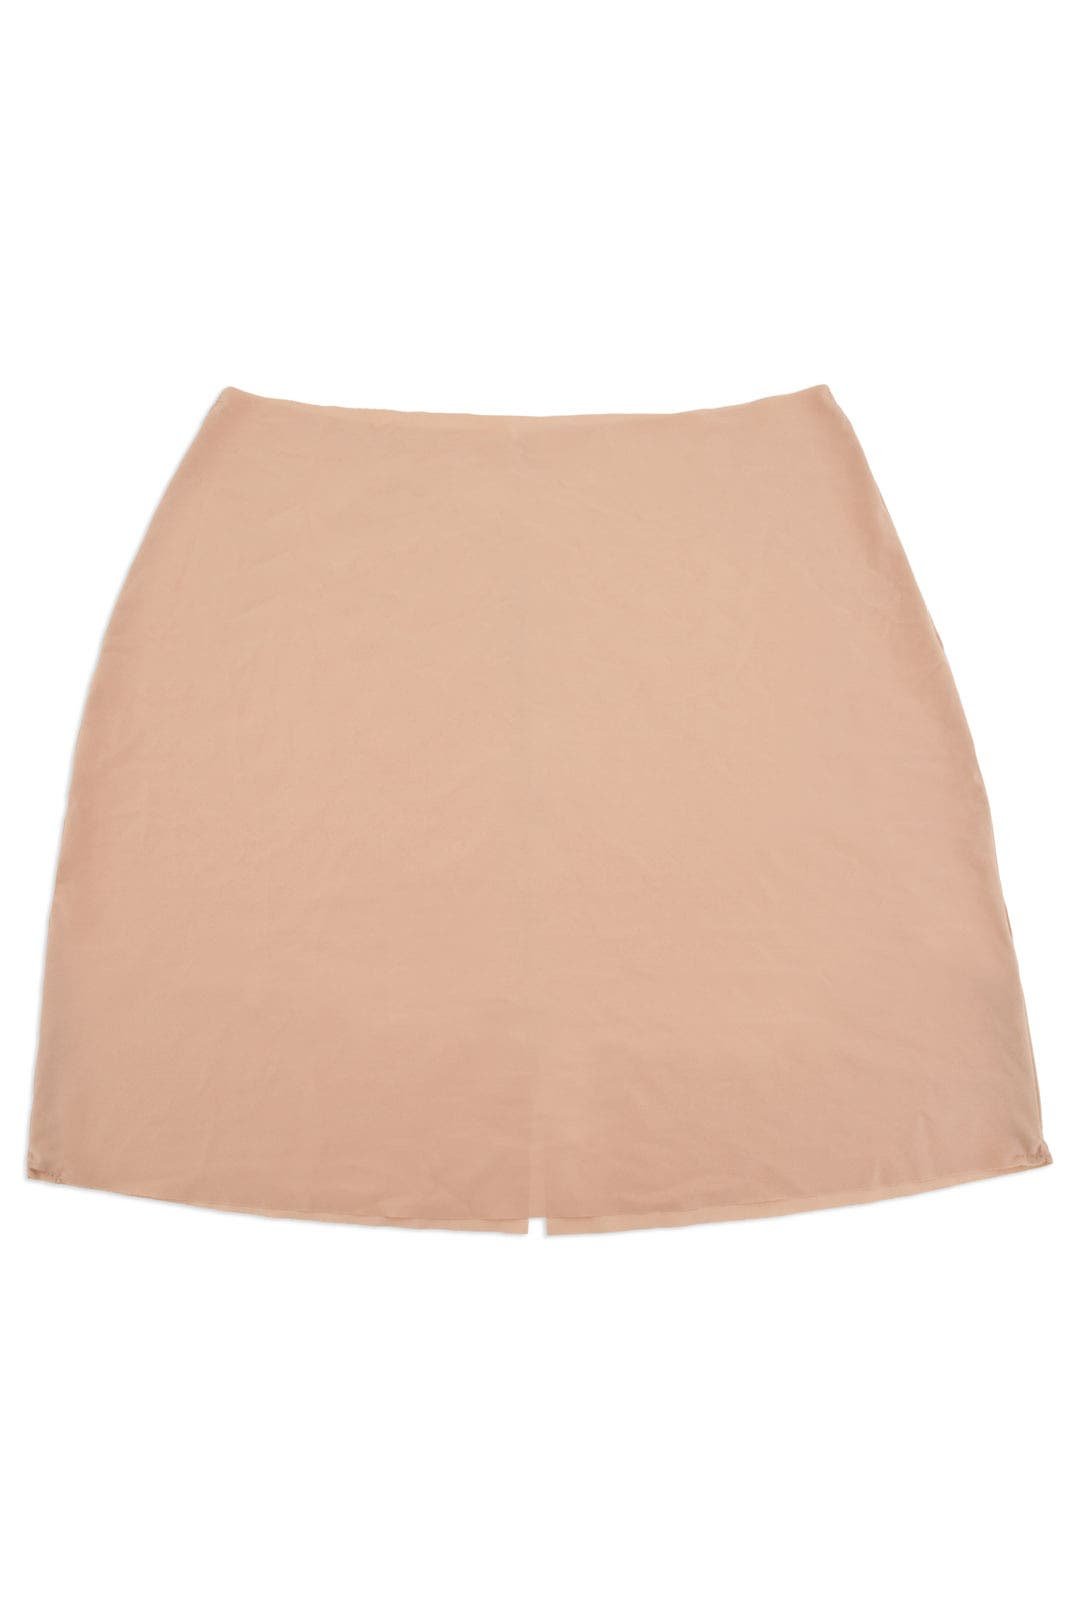 Nude Mini Half Slip by Commando